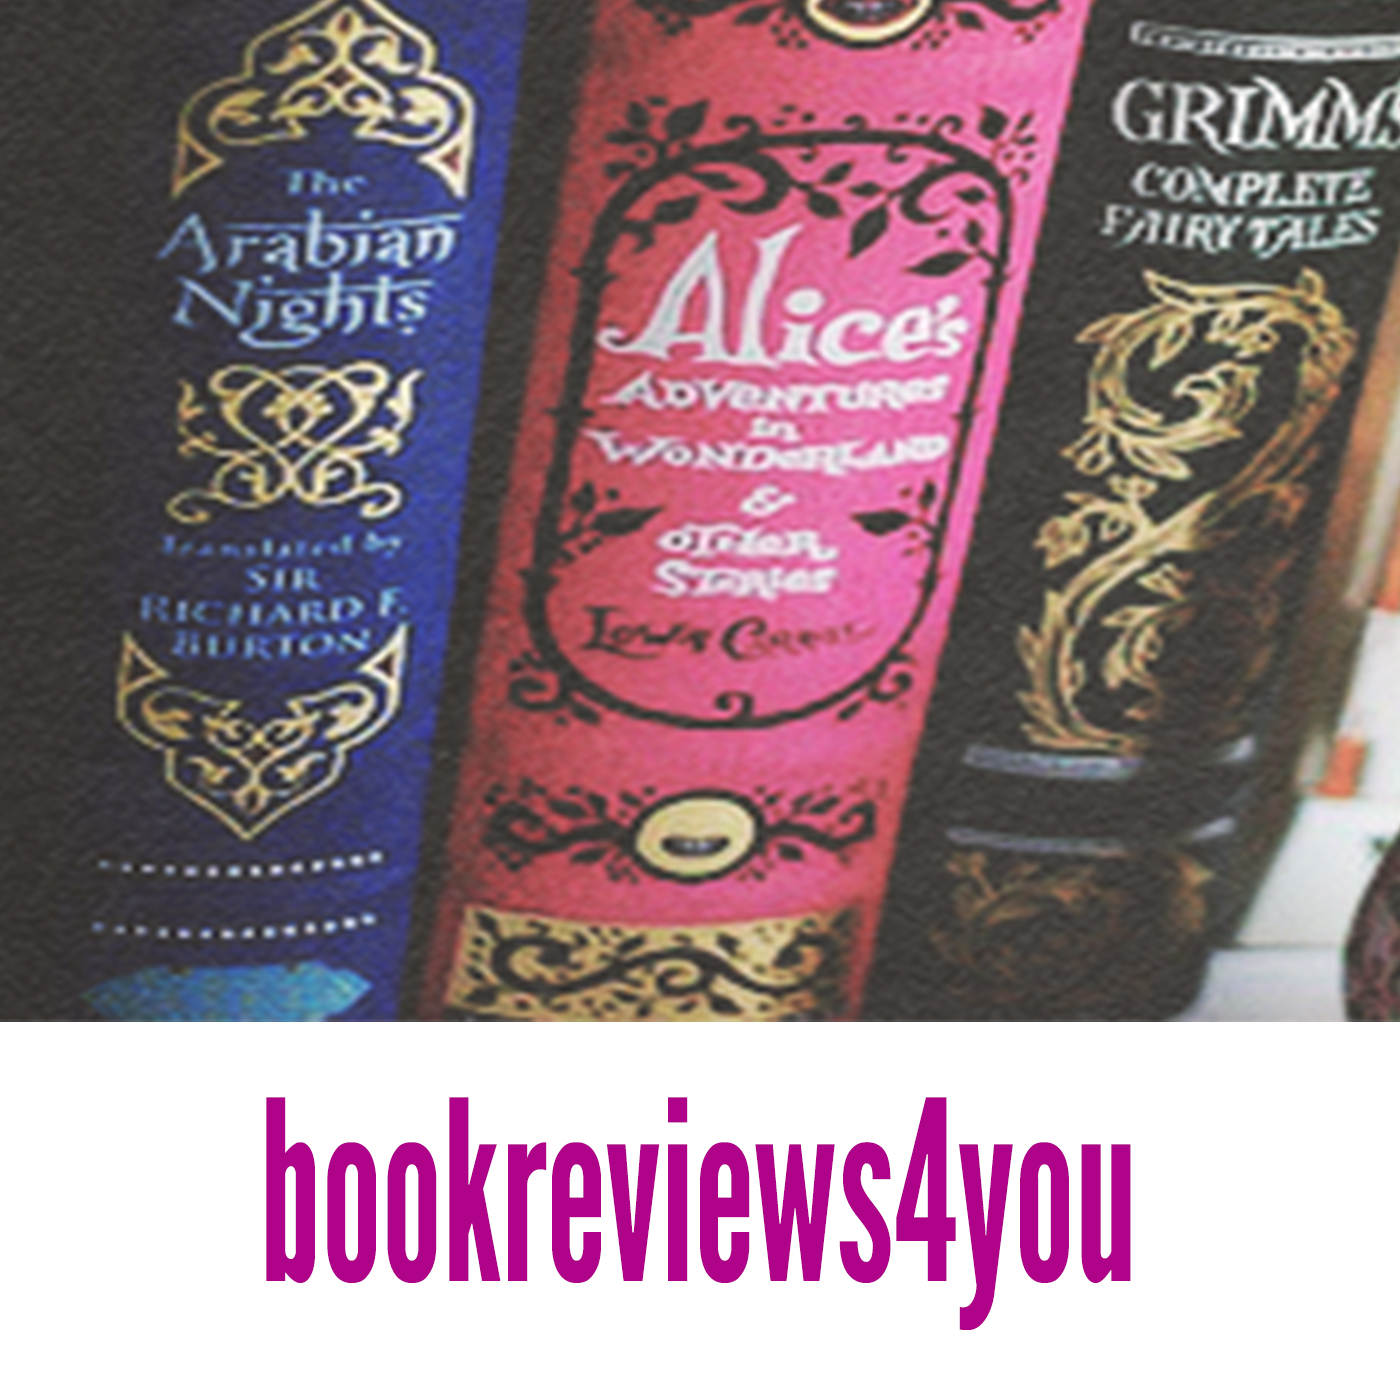 BookReviews4You!